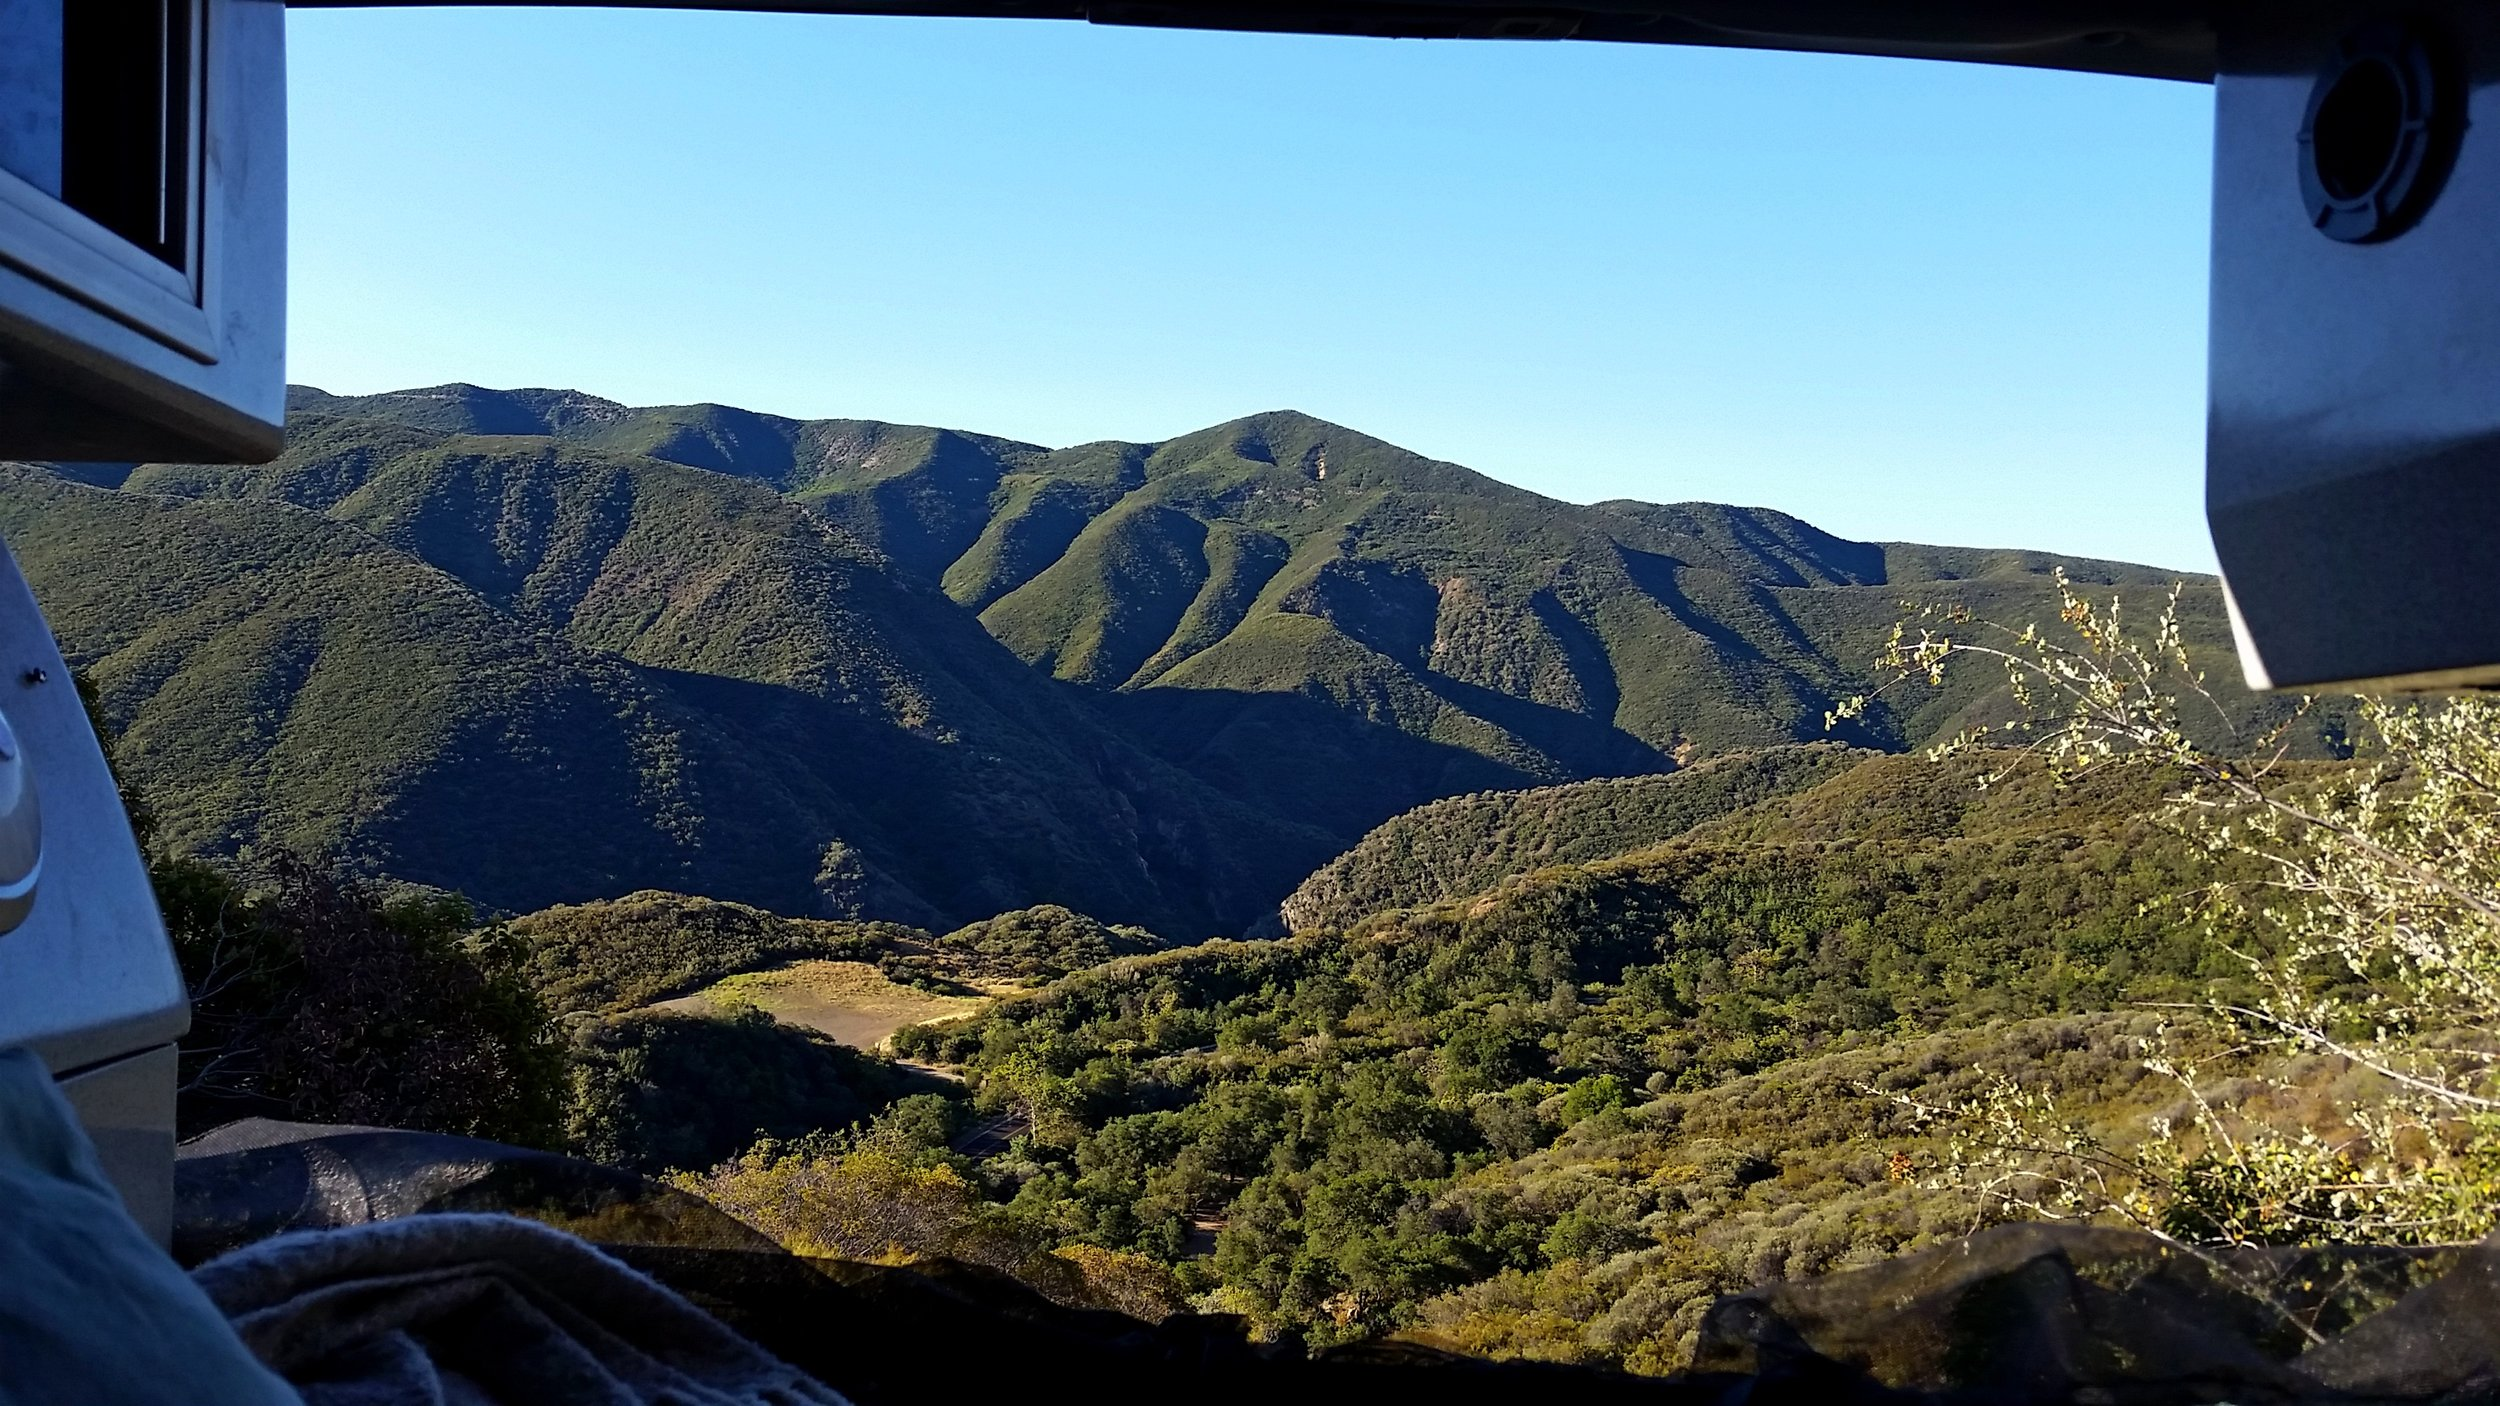 Los Padres National Forest. It ain't oceanside, but ain't bad either.